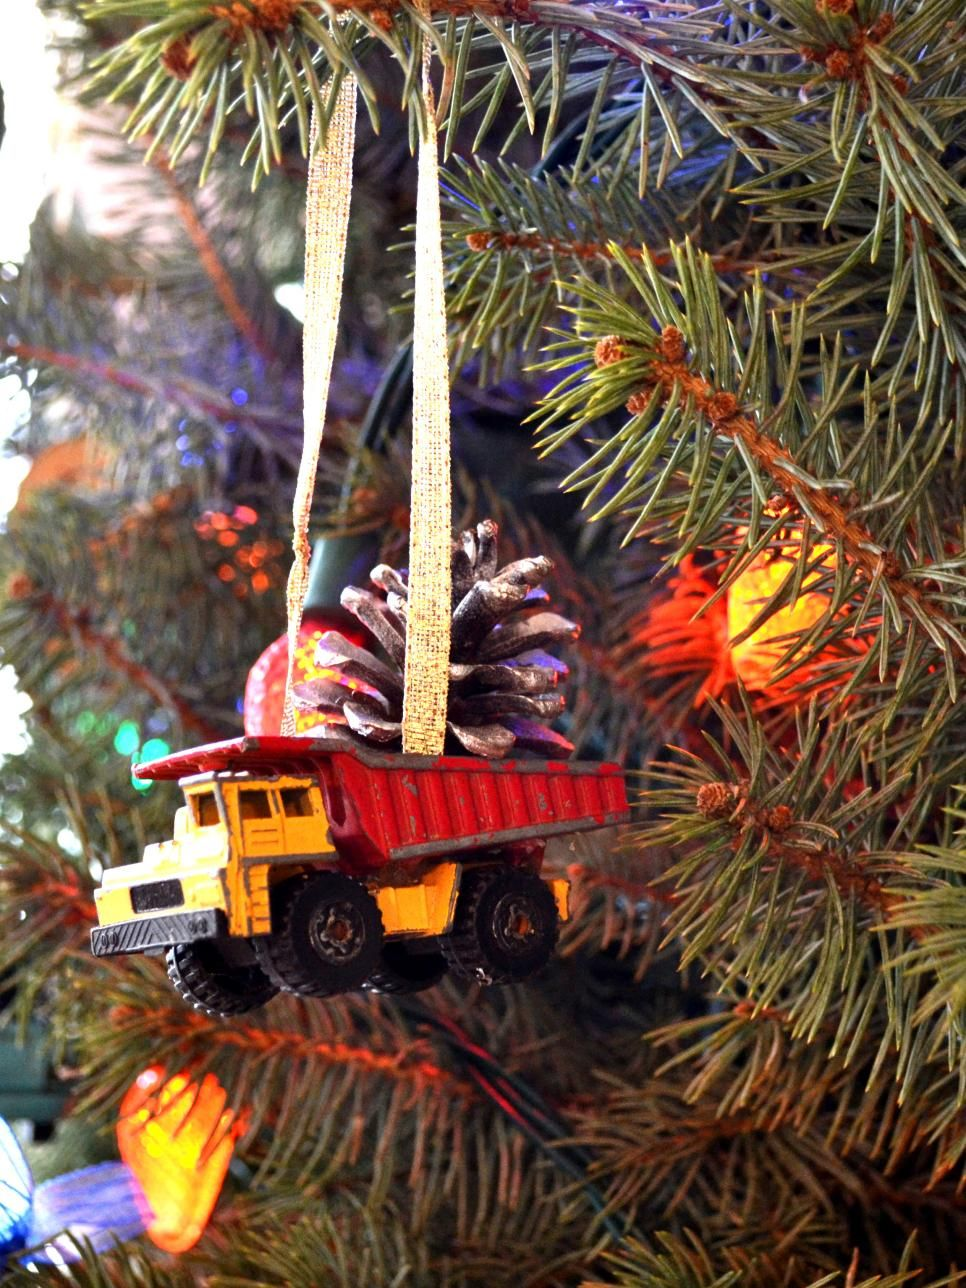 Upcycle old toys into new Christmas tree